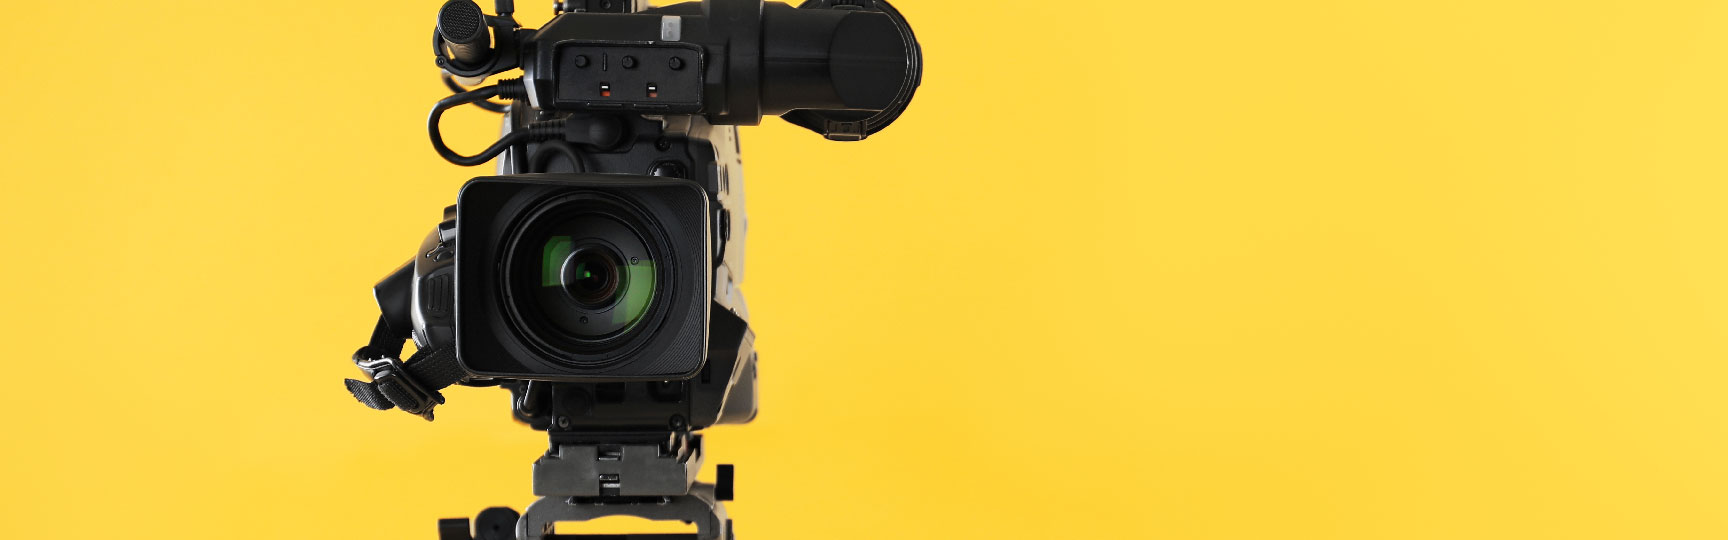 Why You Need Video In Your Marketing Strategy